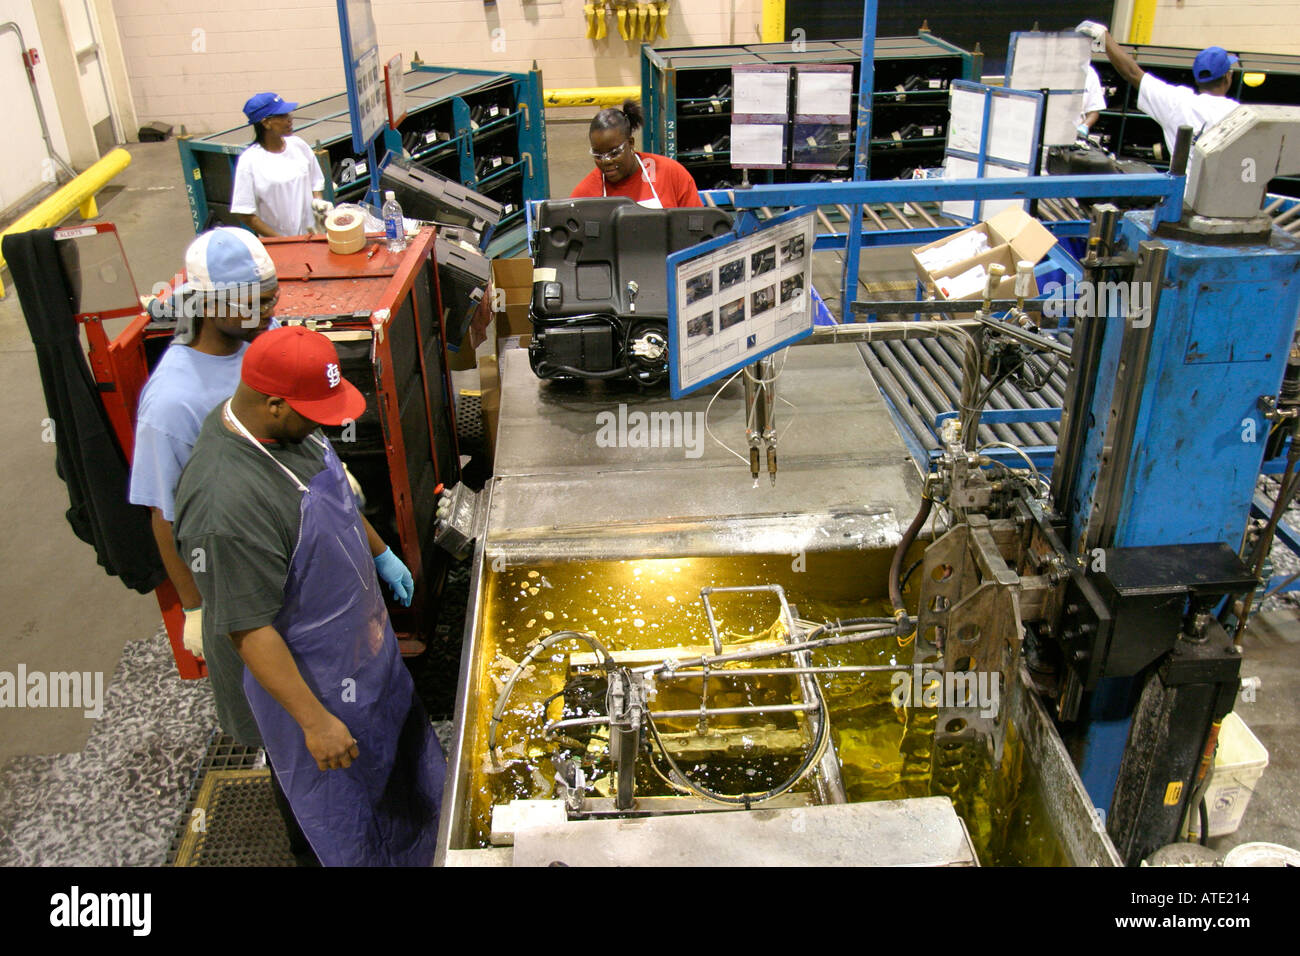 Workers at Vitec inspect newly manufactured automobile gas tanks destined for General Motors - Stock Image